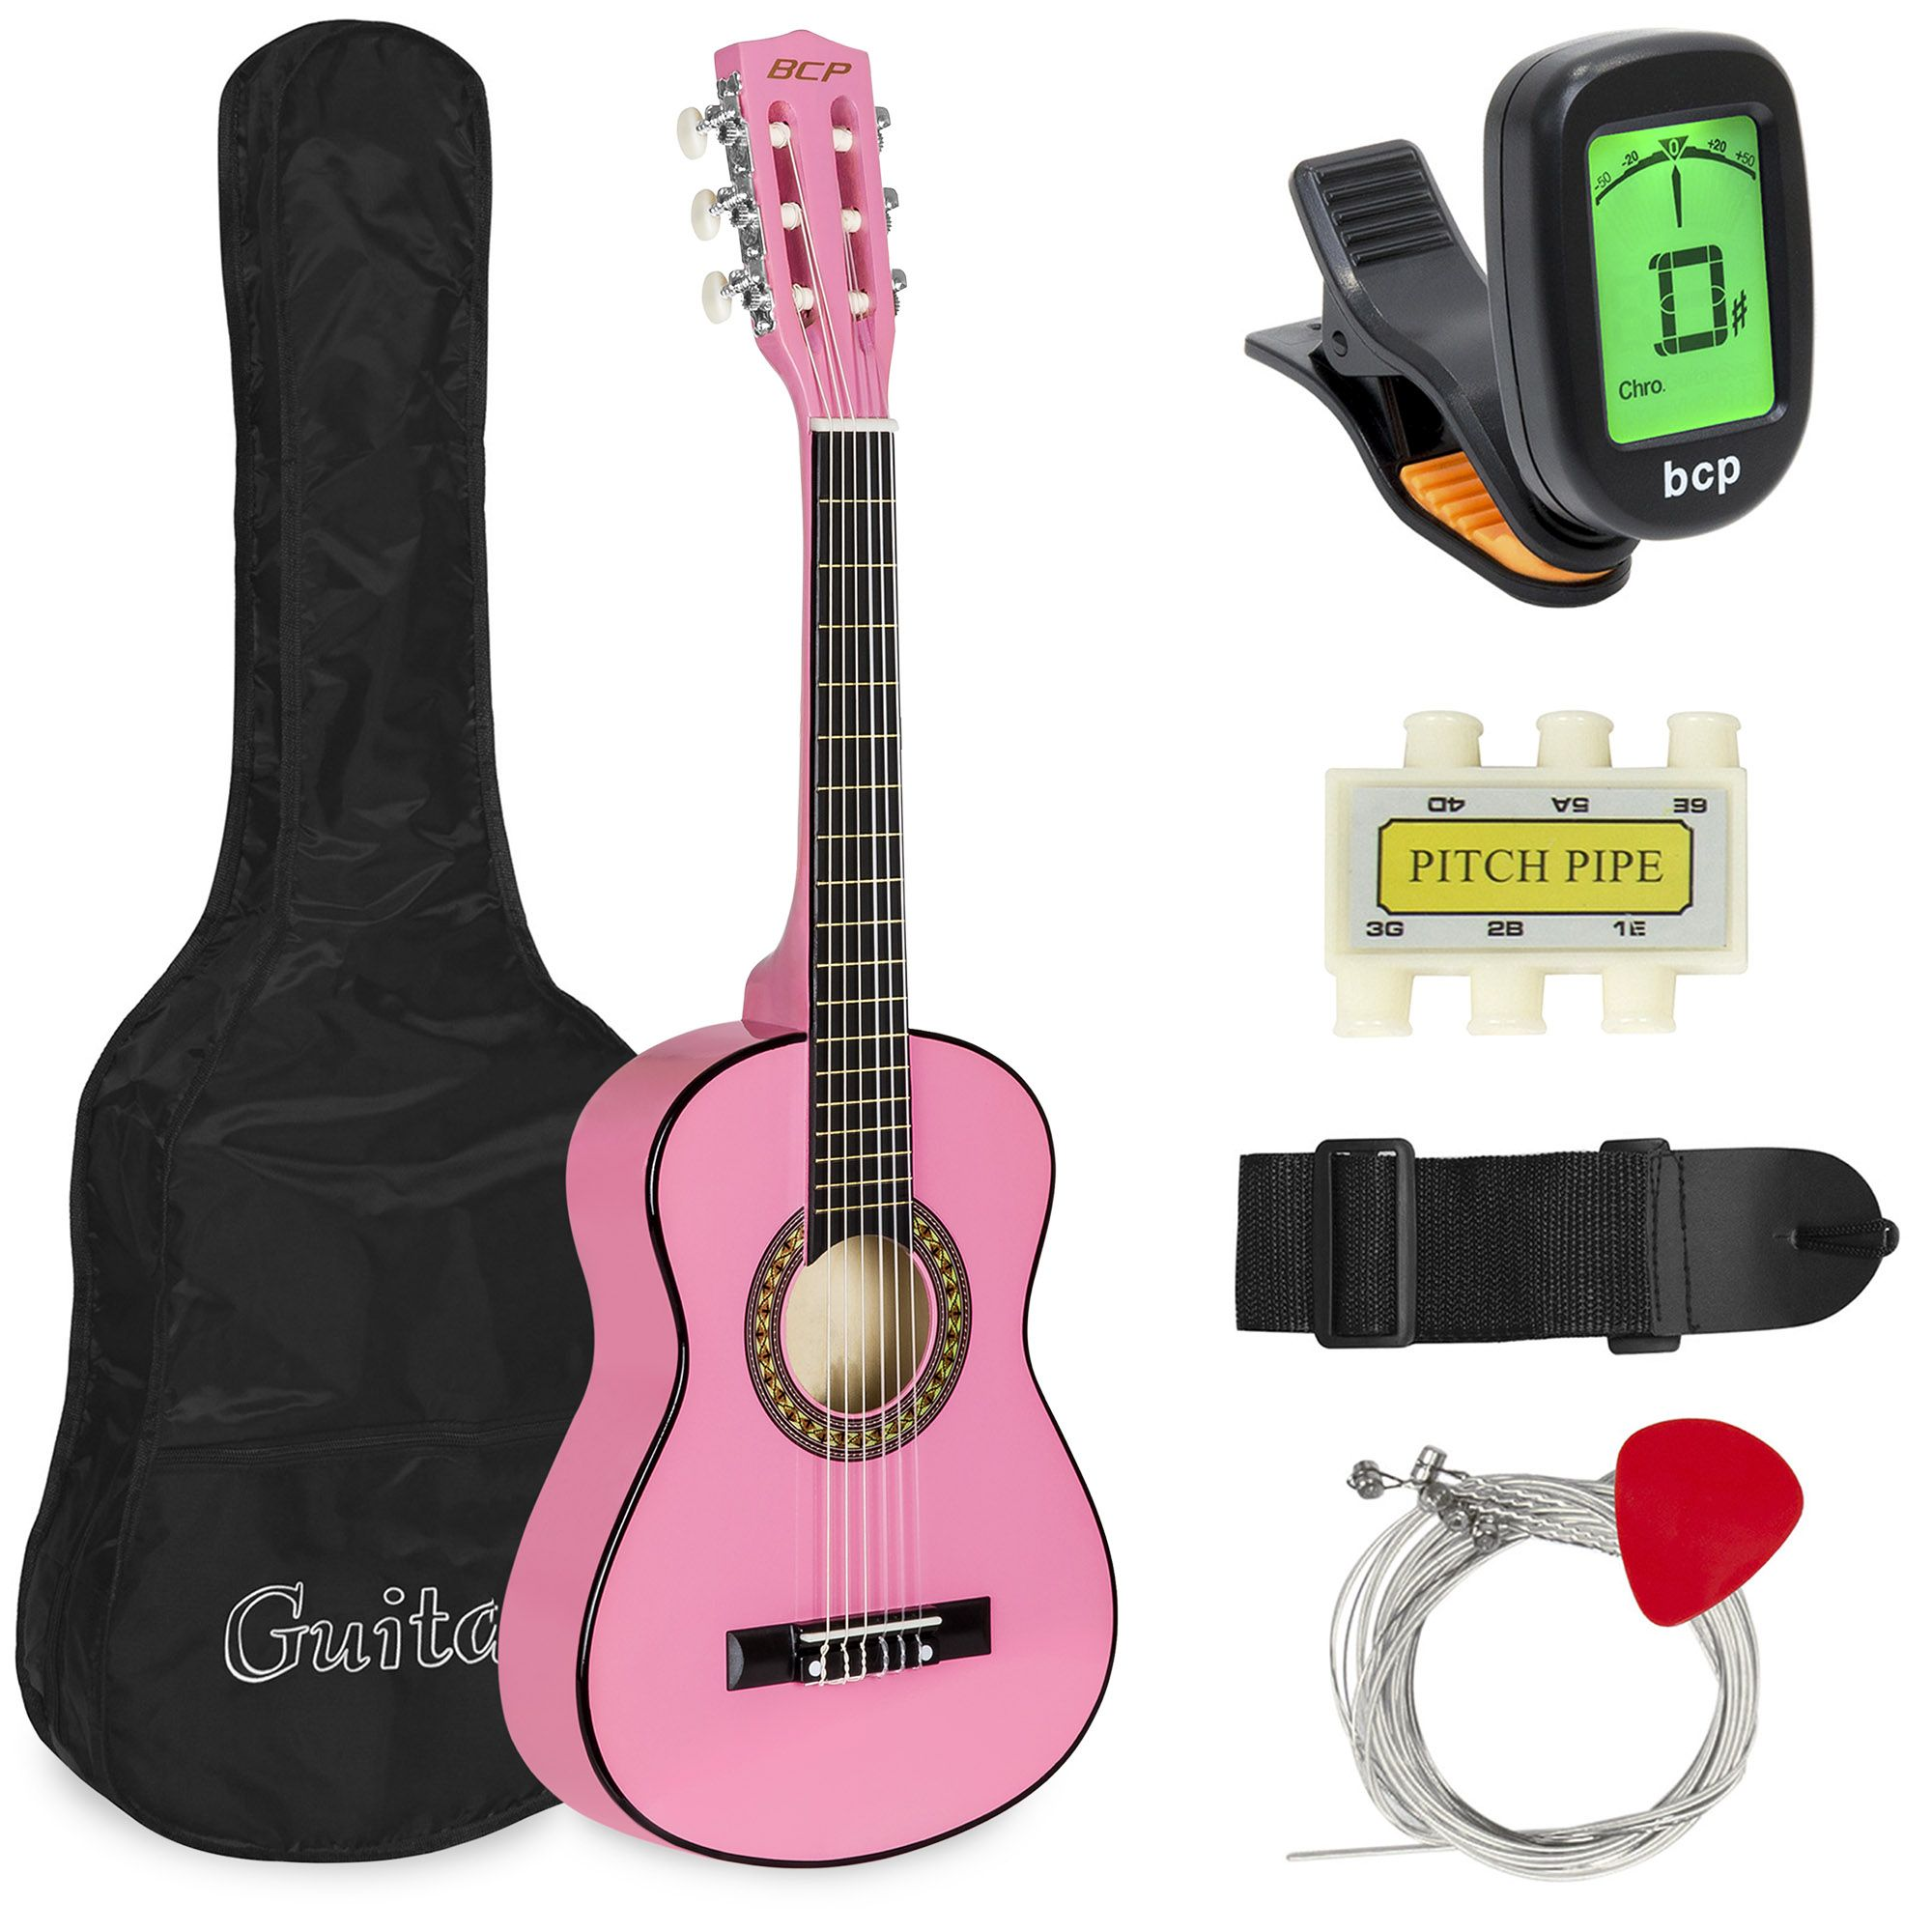 Best Choice Products 30in Kids Acoustic Guitar Beginner Starter Kit With Tuner Strap Case Strings Pink Walmart Com Classical Acoustic Guitar Guitar For Beginners Guitar